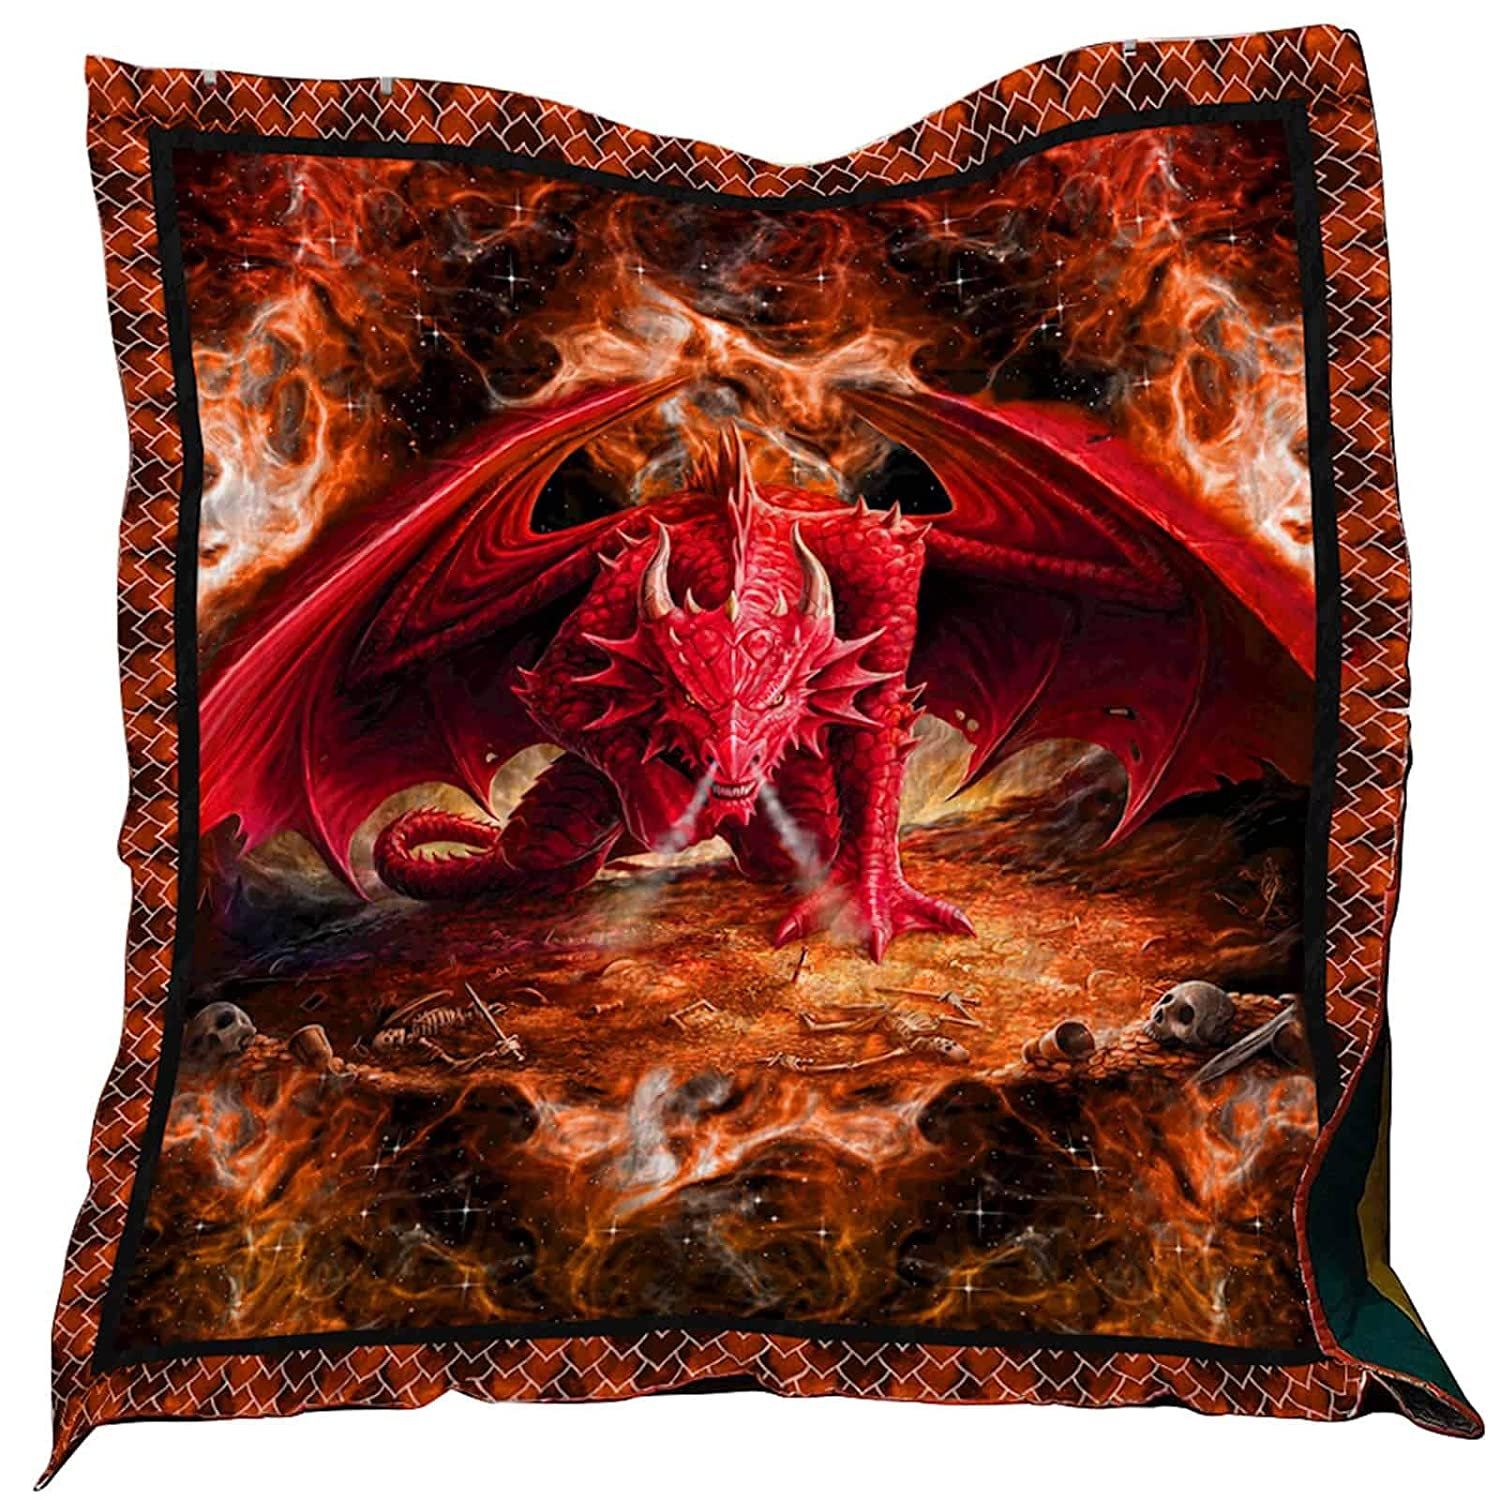 Fire Red Dragon Washable Quilt 0201-02 Queen All Season Quilts Comforters with Reversible Cotton King//Queen//Twin Size Best Decorative Quilts-Unique Quilted for Gifts